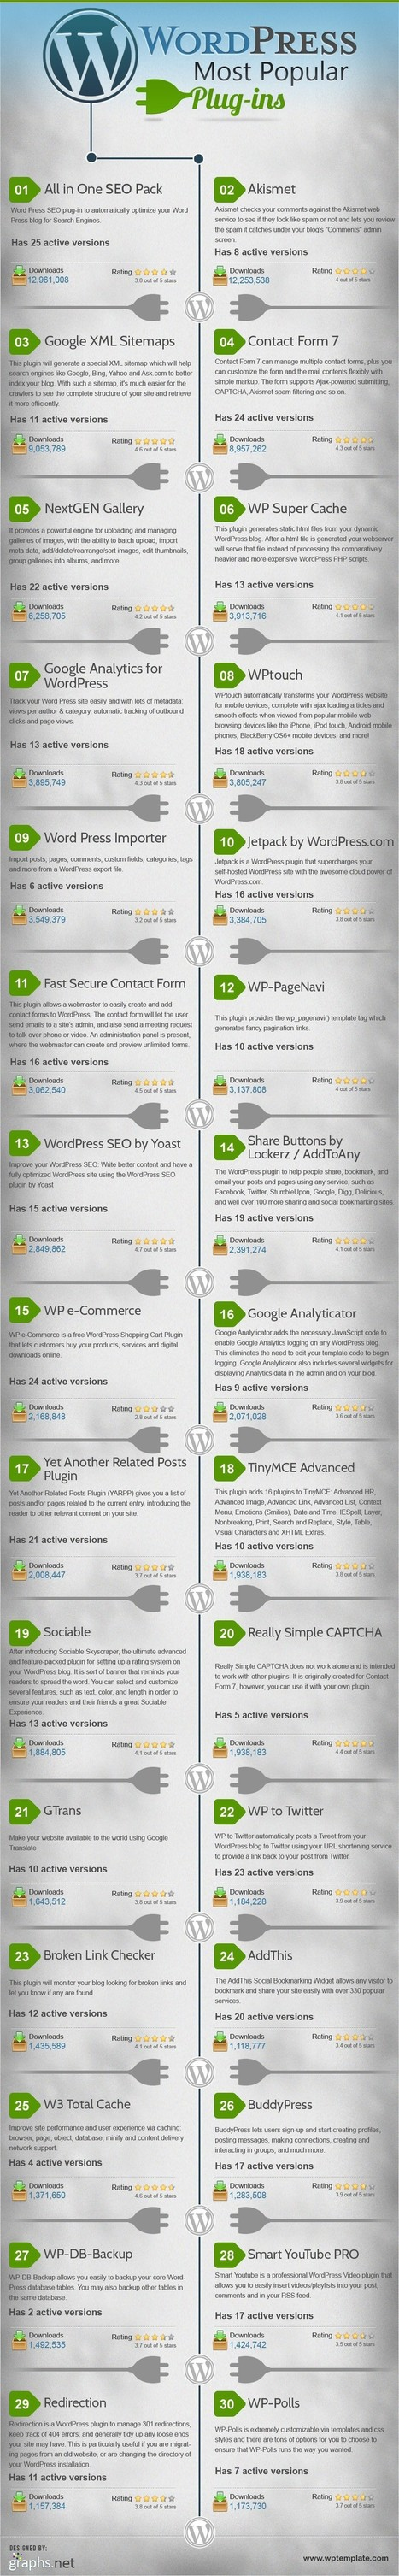 Top 30 Best & Most Popular WordPress Plugins | All Infographics | Social Media Feed | Scoop.it